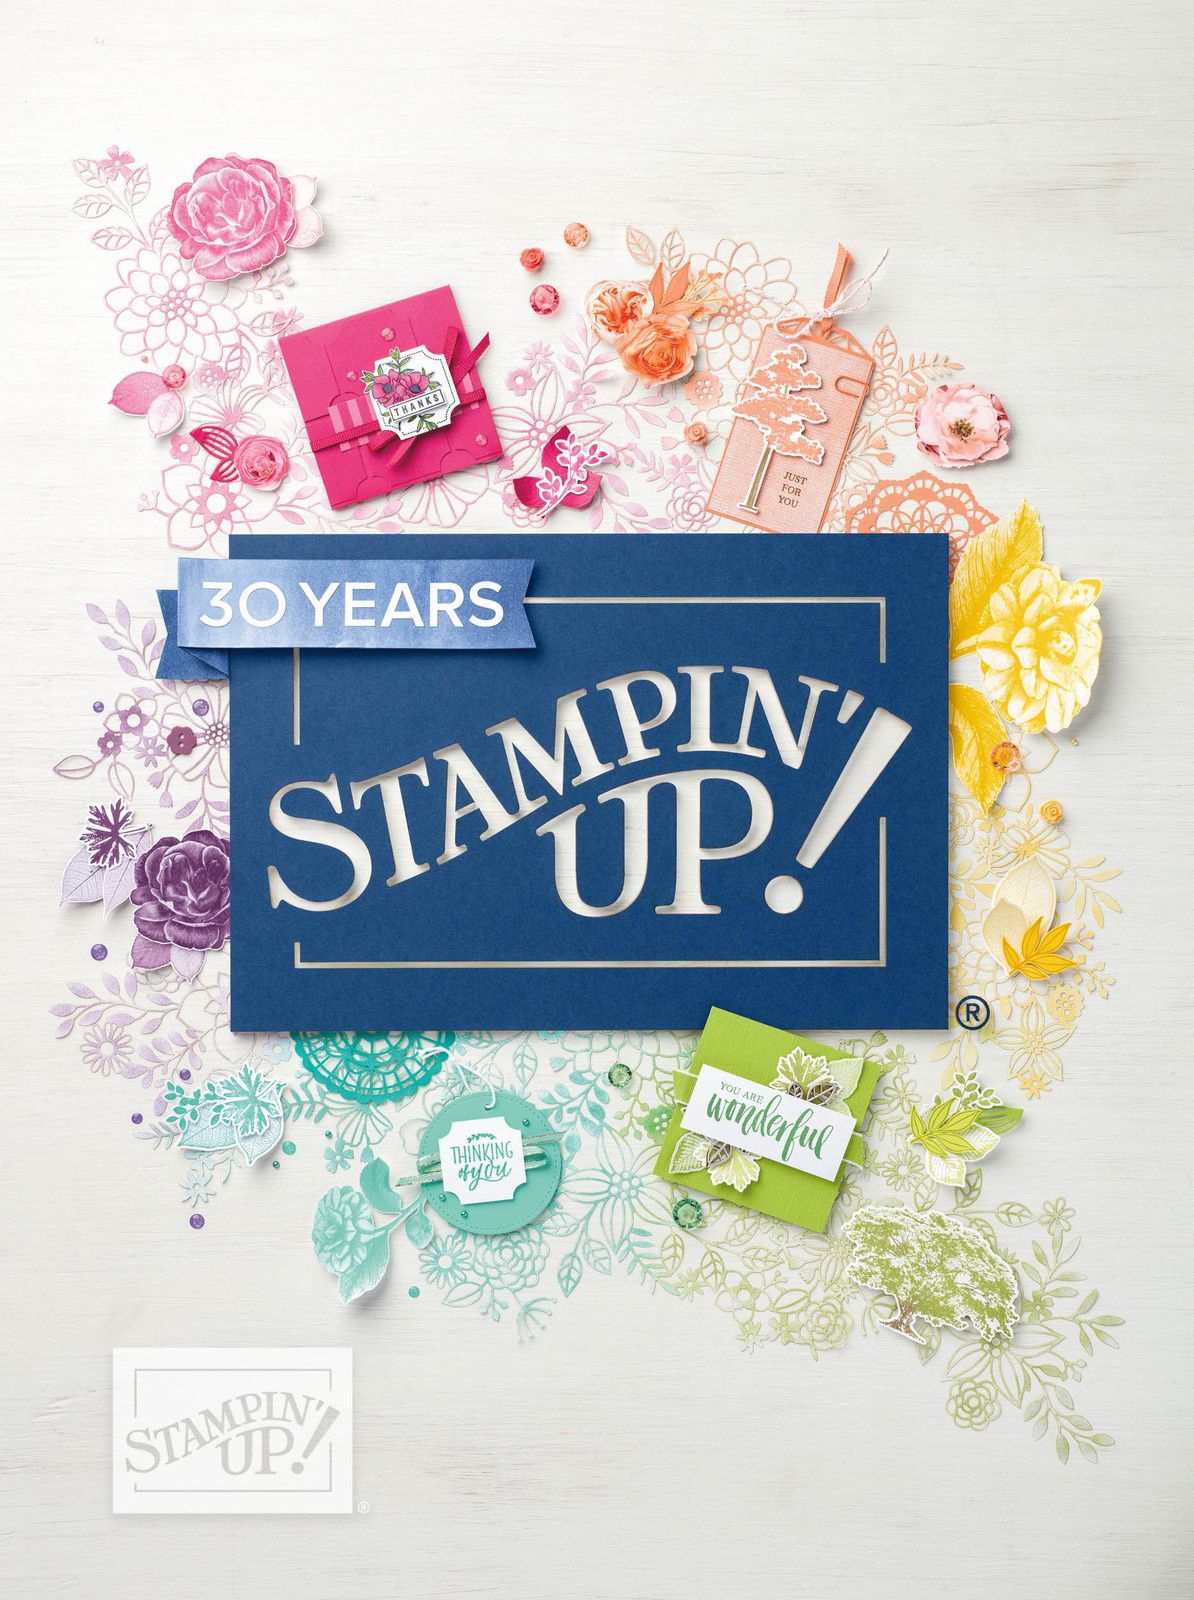 Catalogue annuel 2018 2019 Stampin'Up !